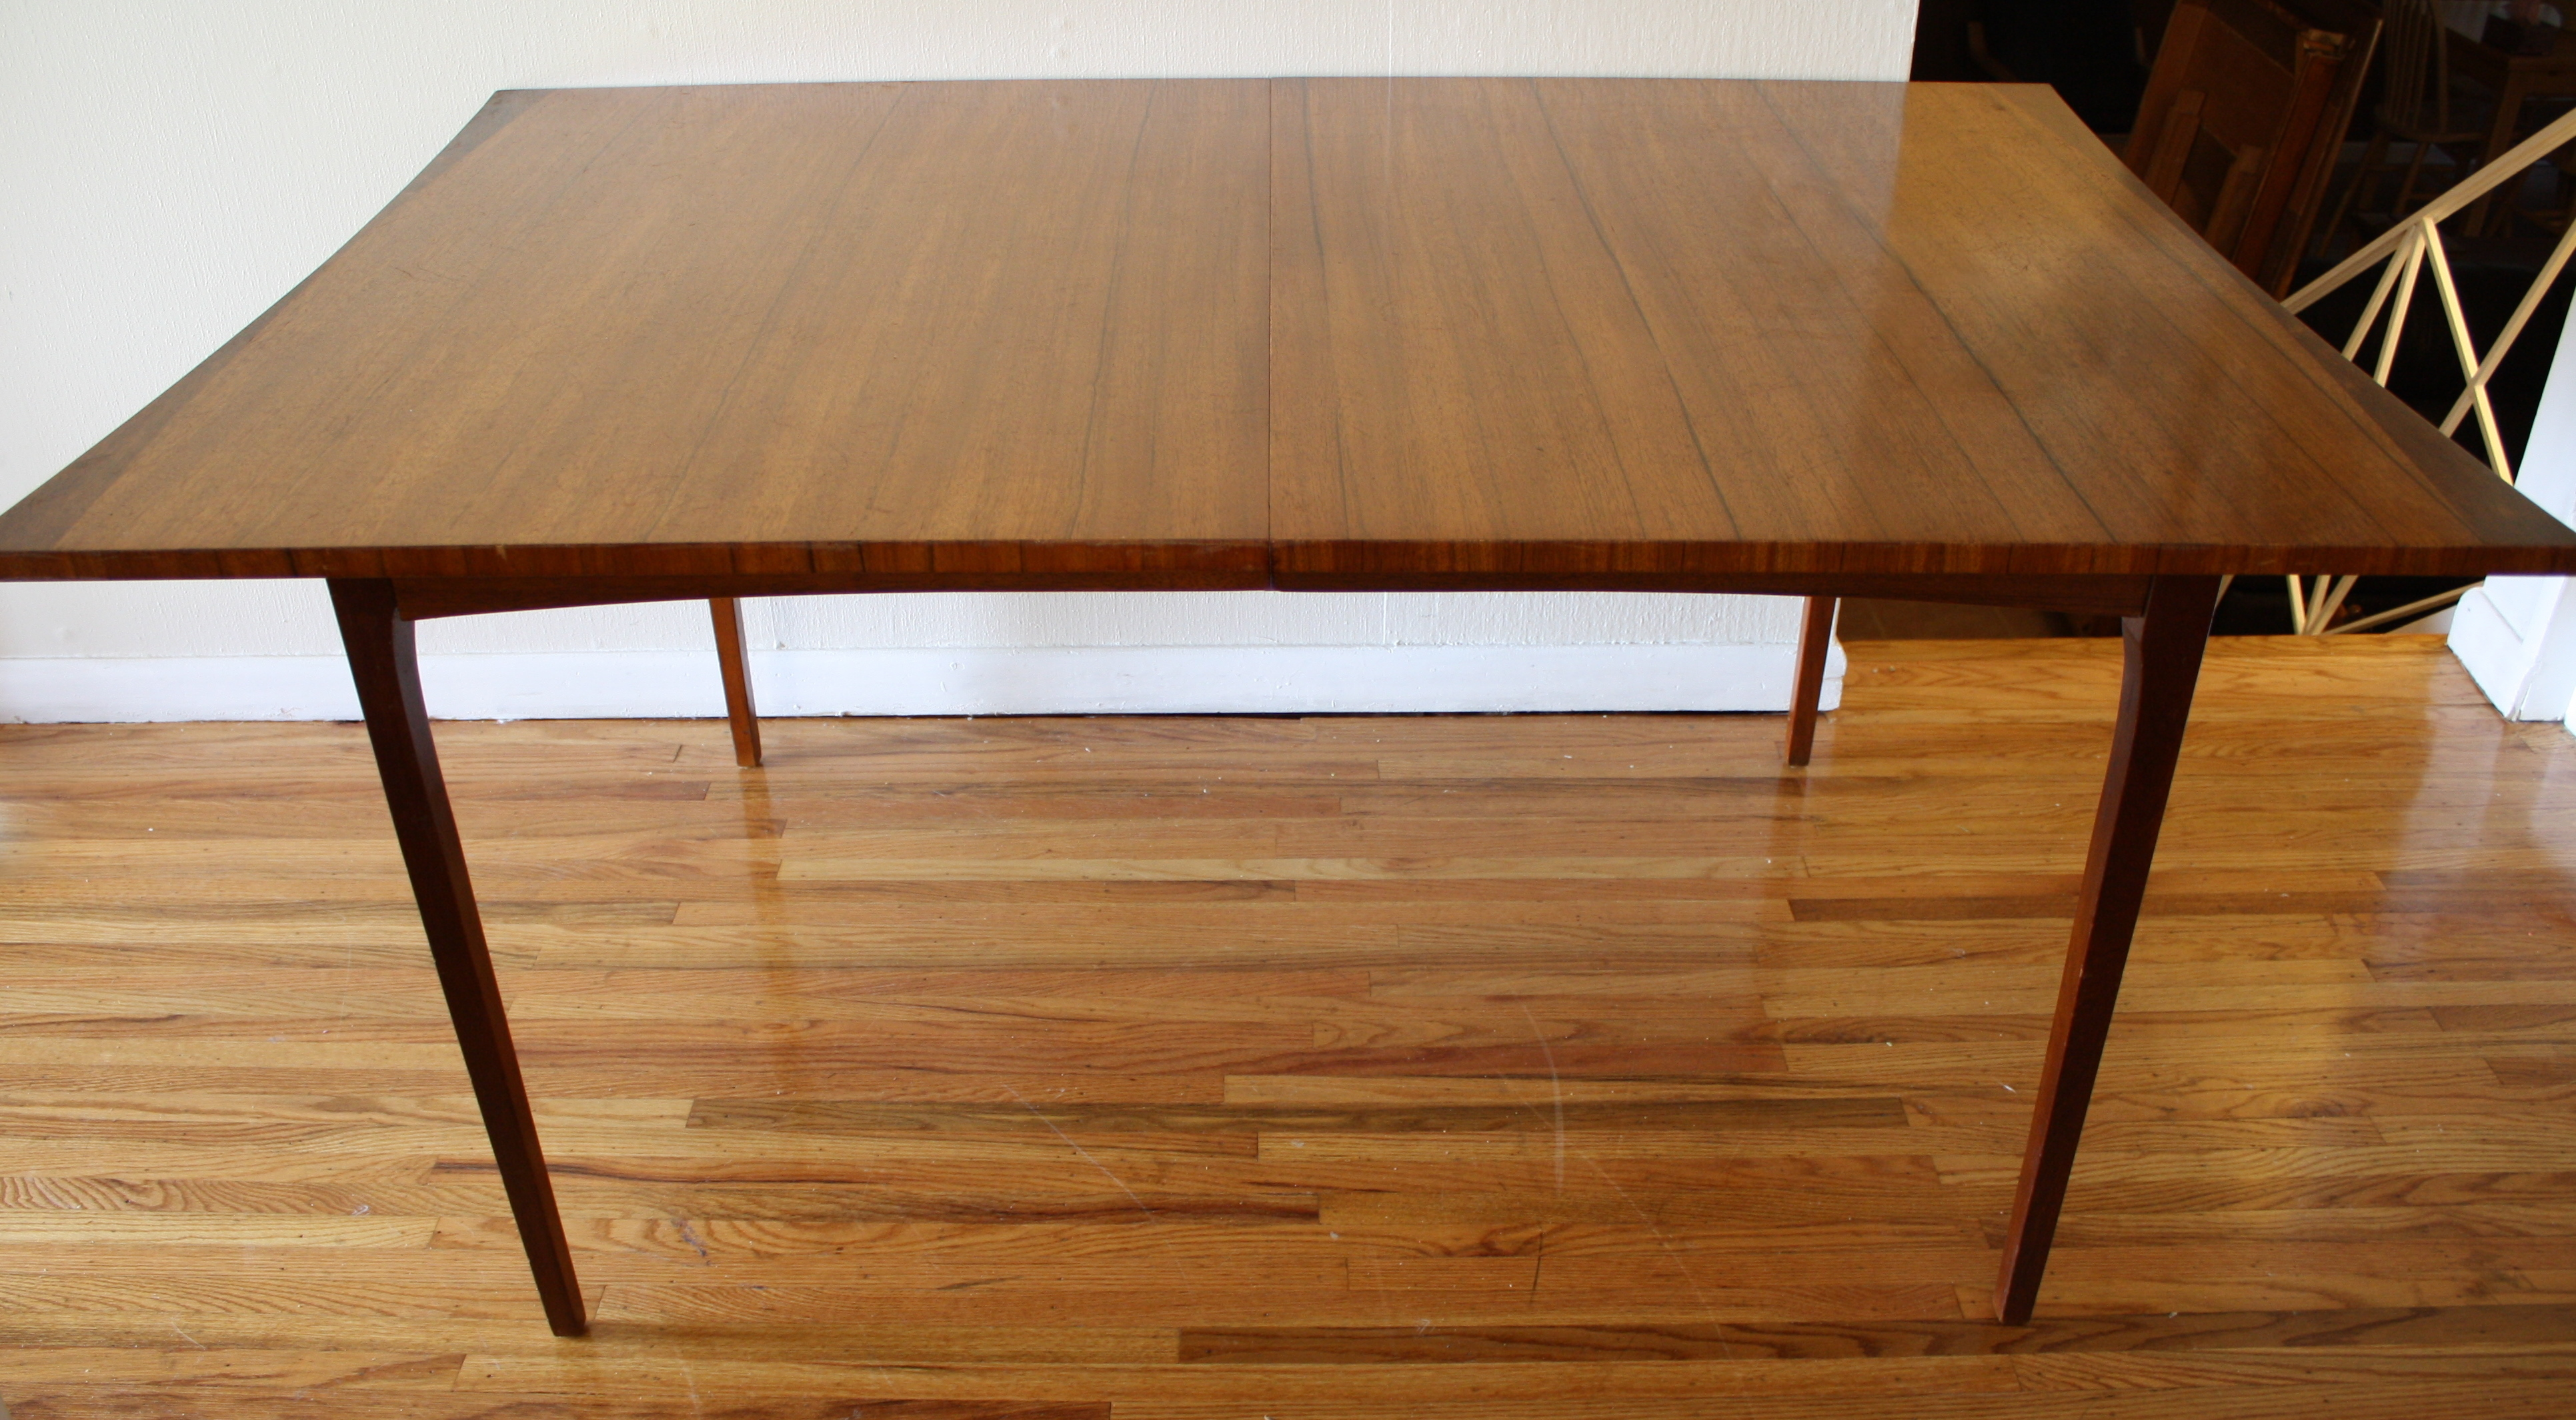 Dining table van sciver